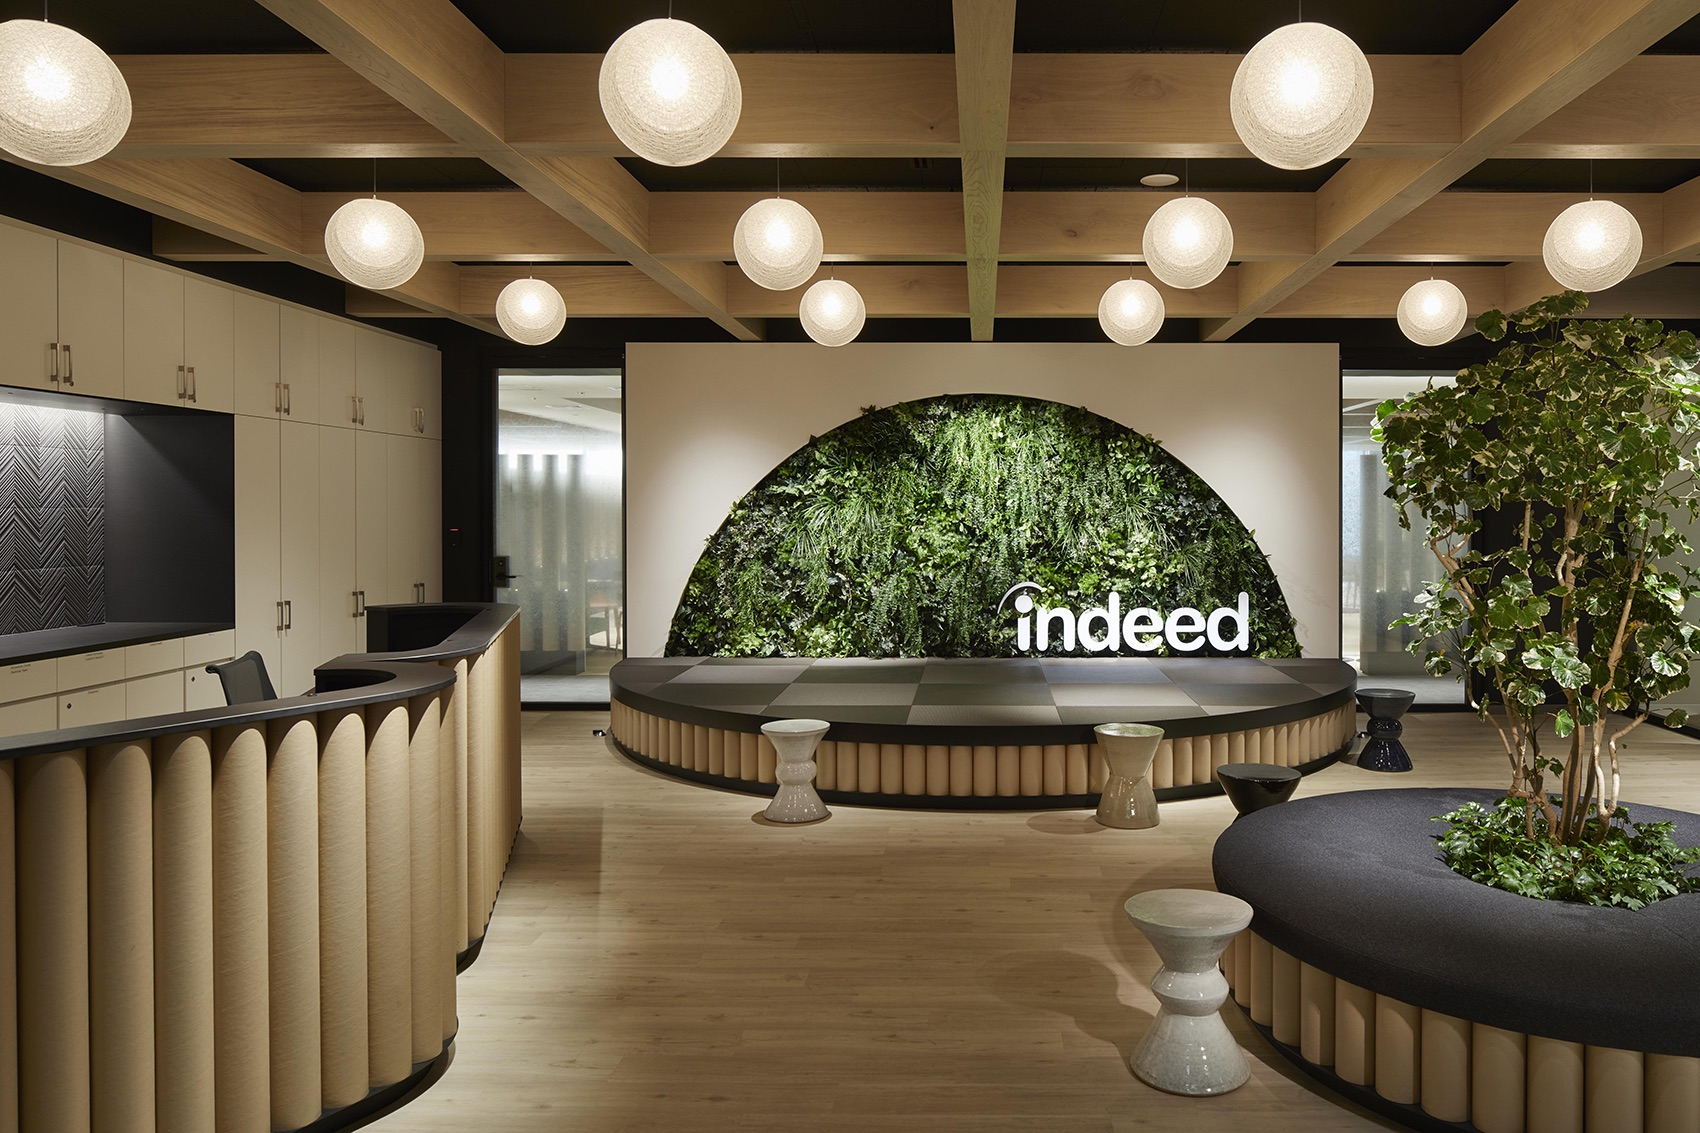 A Tour of Indeed's Biophilic Tokyo Office